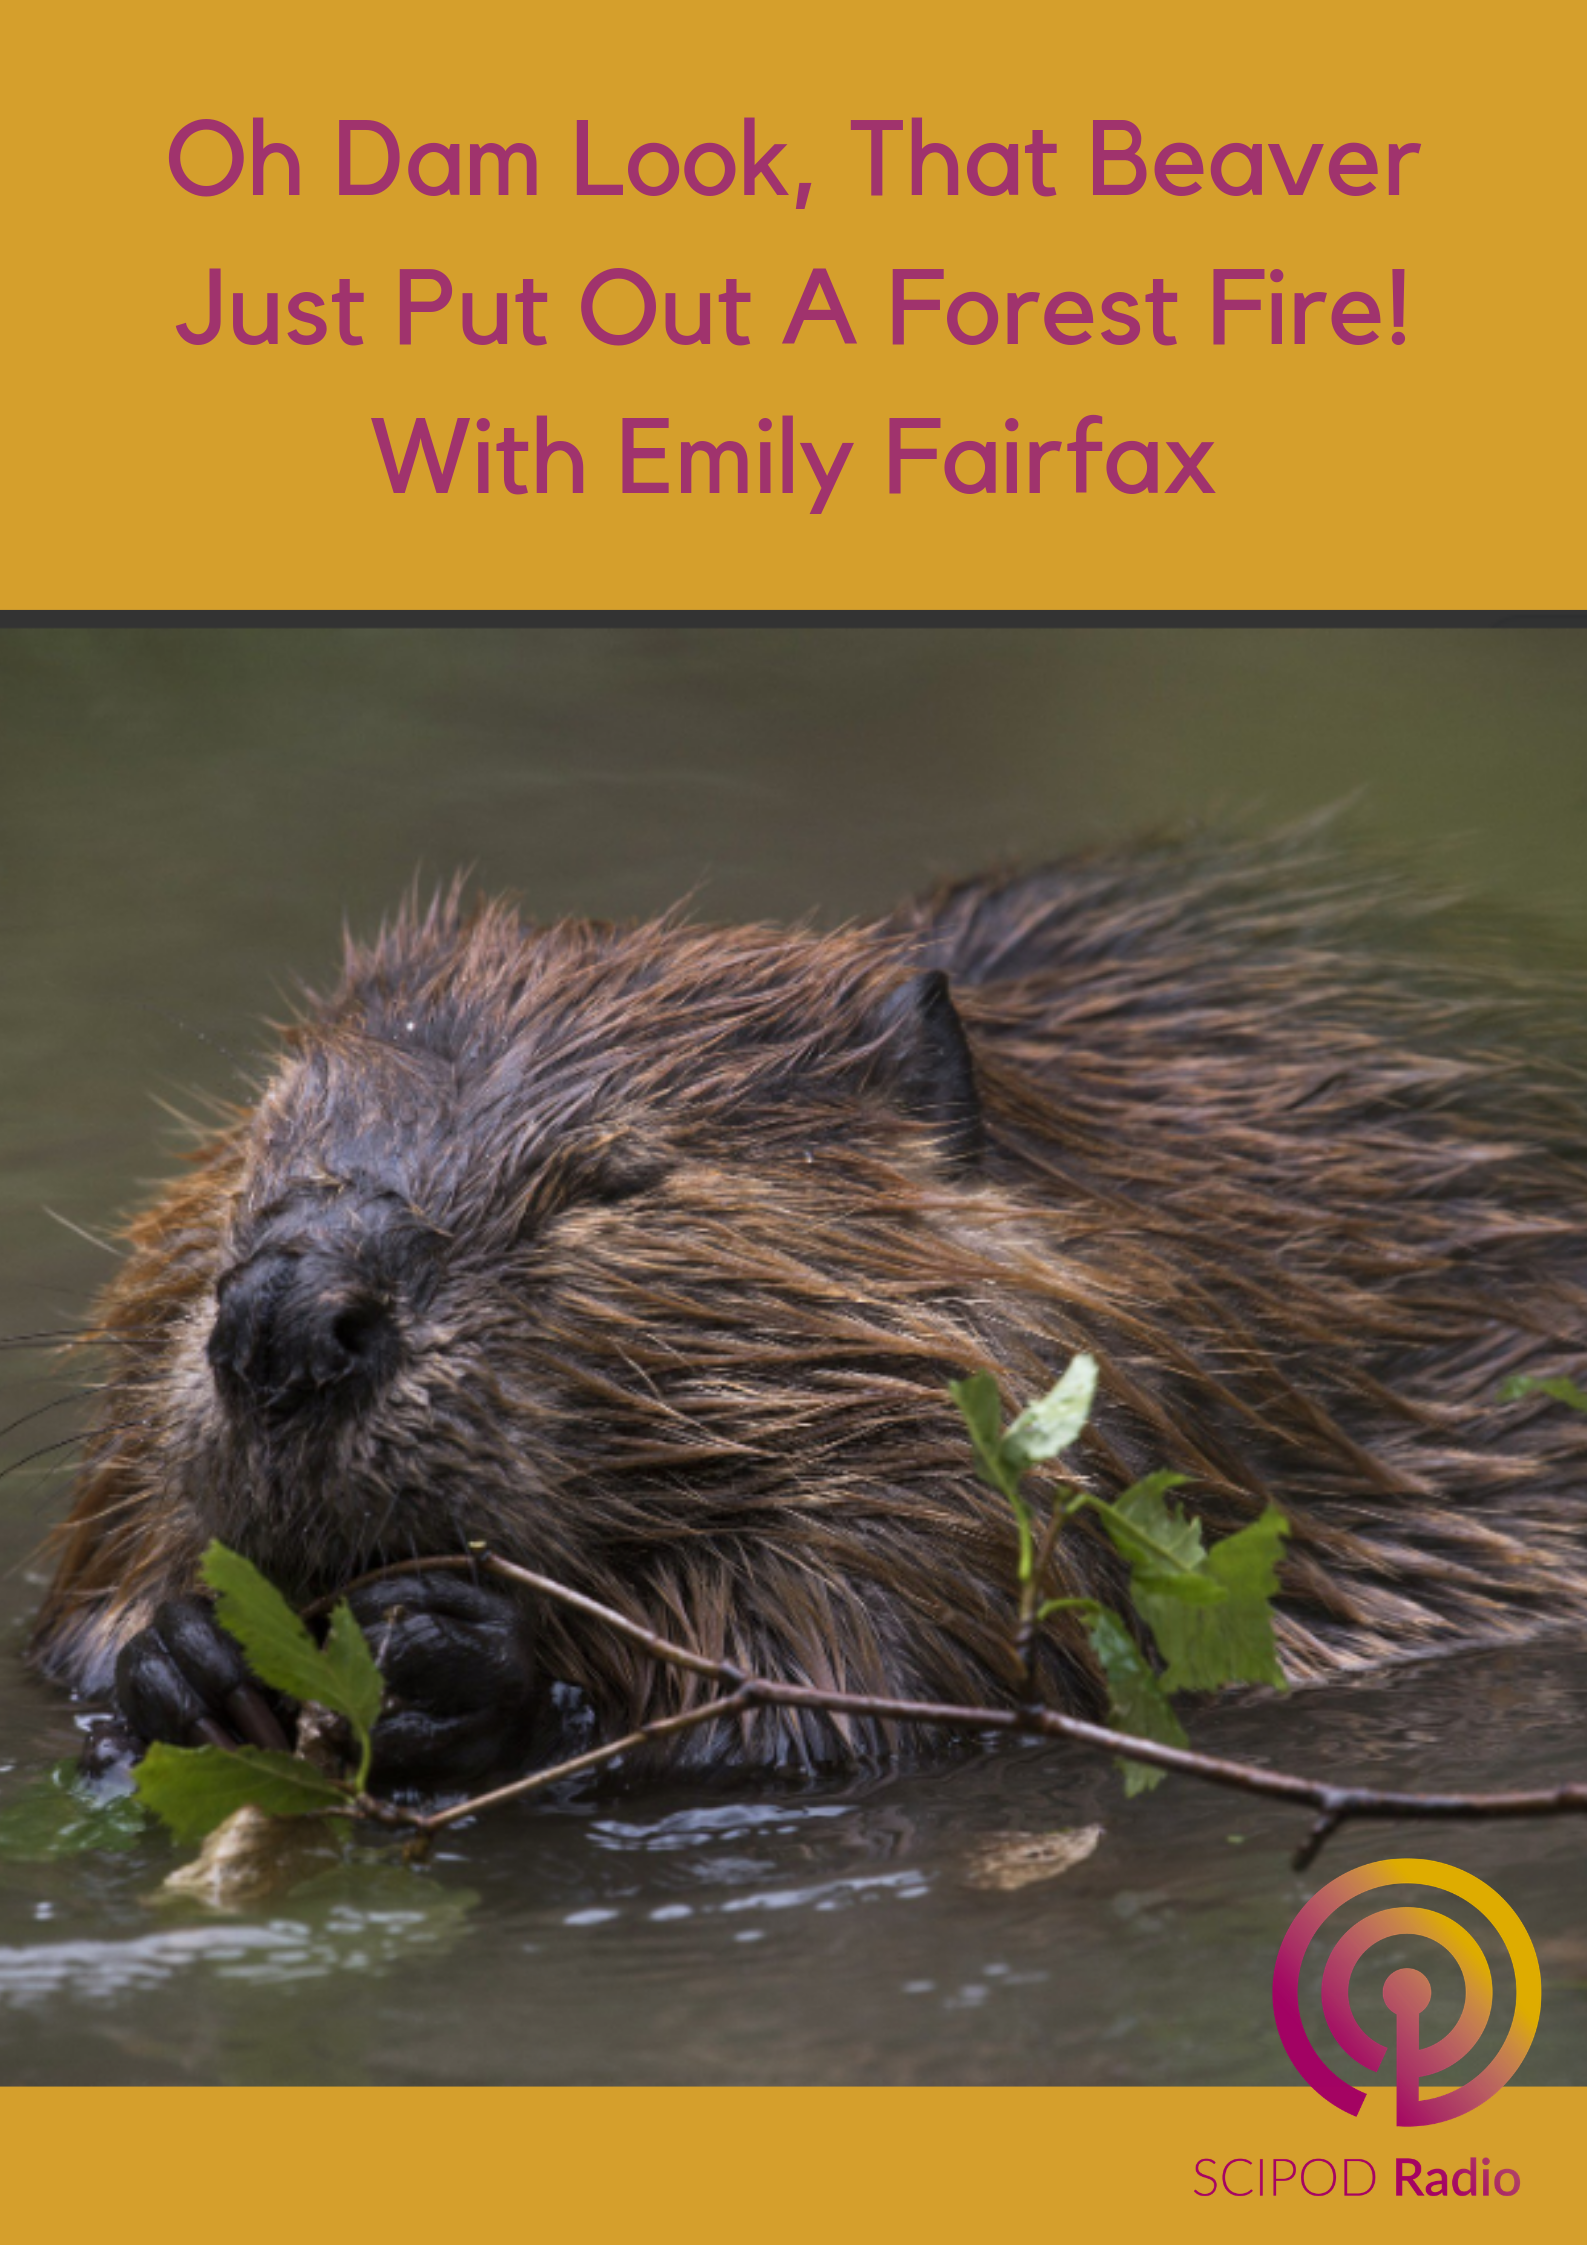 Oh Dam Look, That Beaver Just Put Out A Forest Fire! With Emily Fairfax